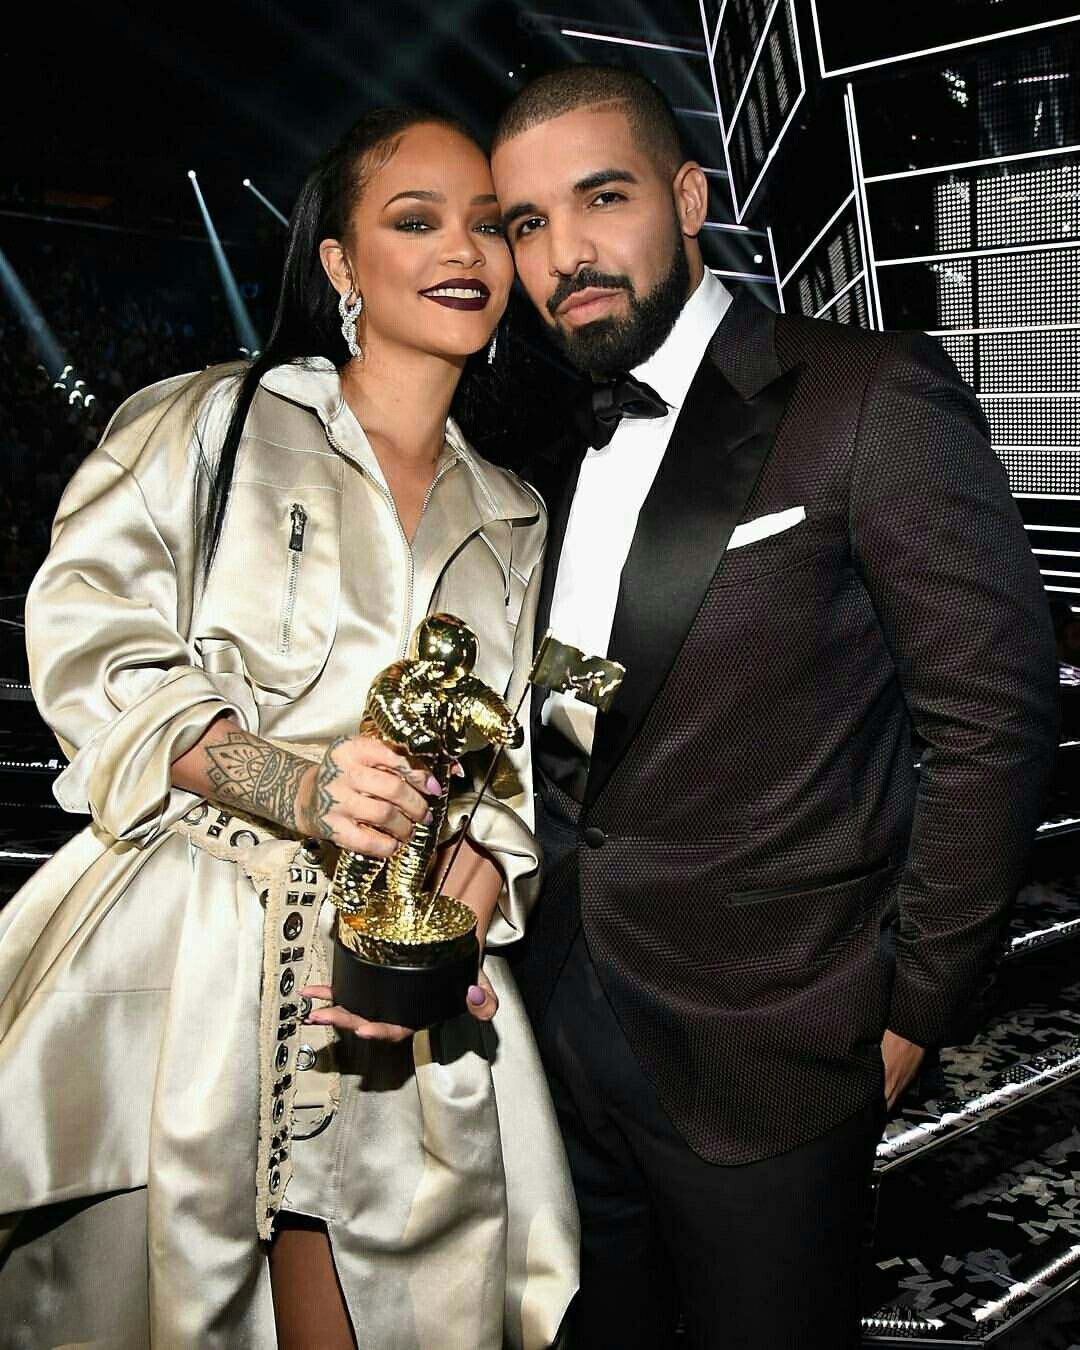 Pin by DWAYNE on Celebrities Rihanna and drake, Cute